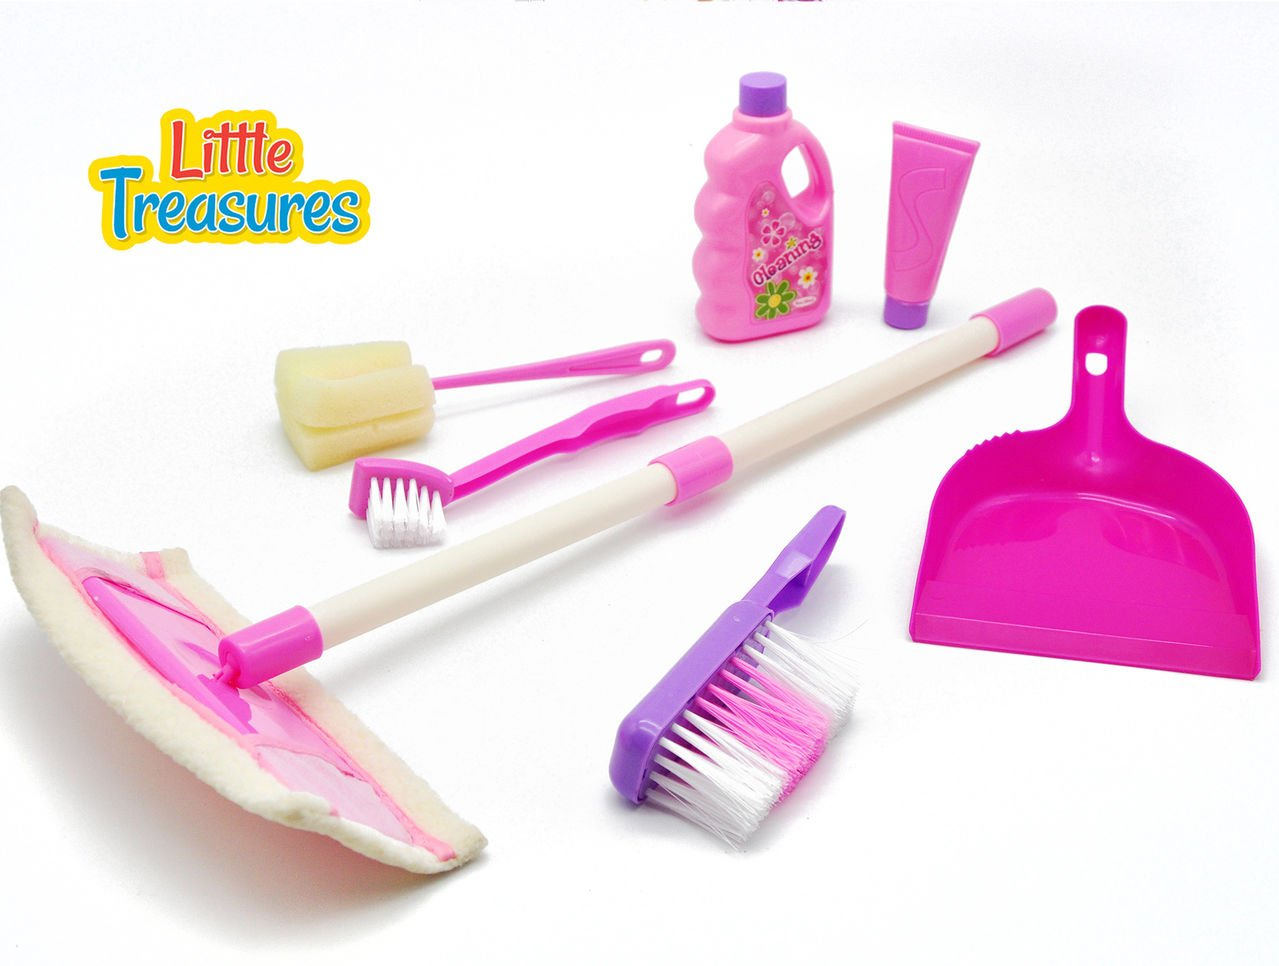 Little Treasures Small Sized 7-pc Cleaning Home Toy Set by Little Treasures